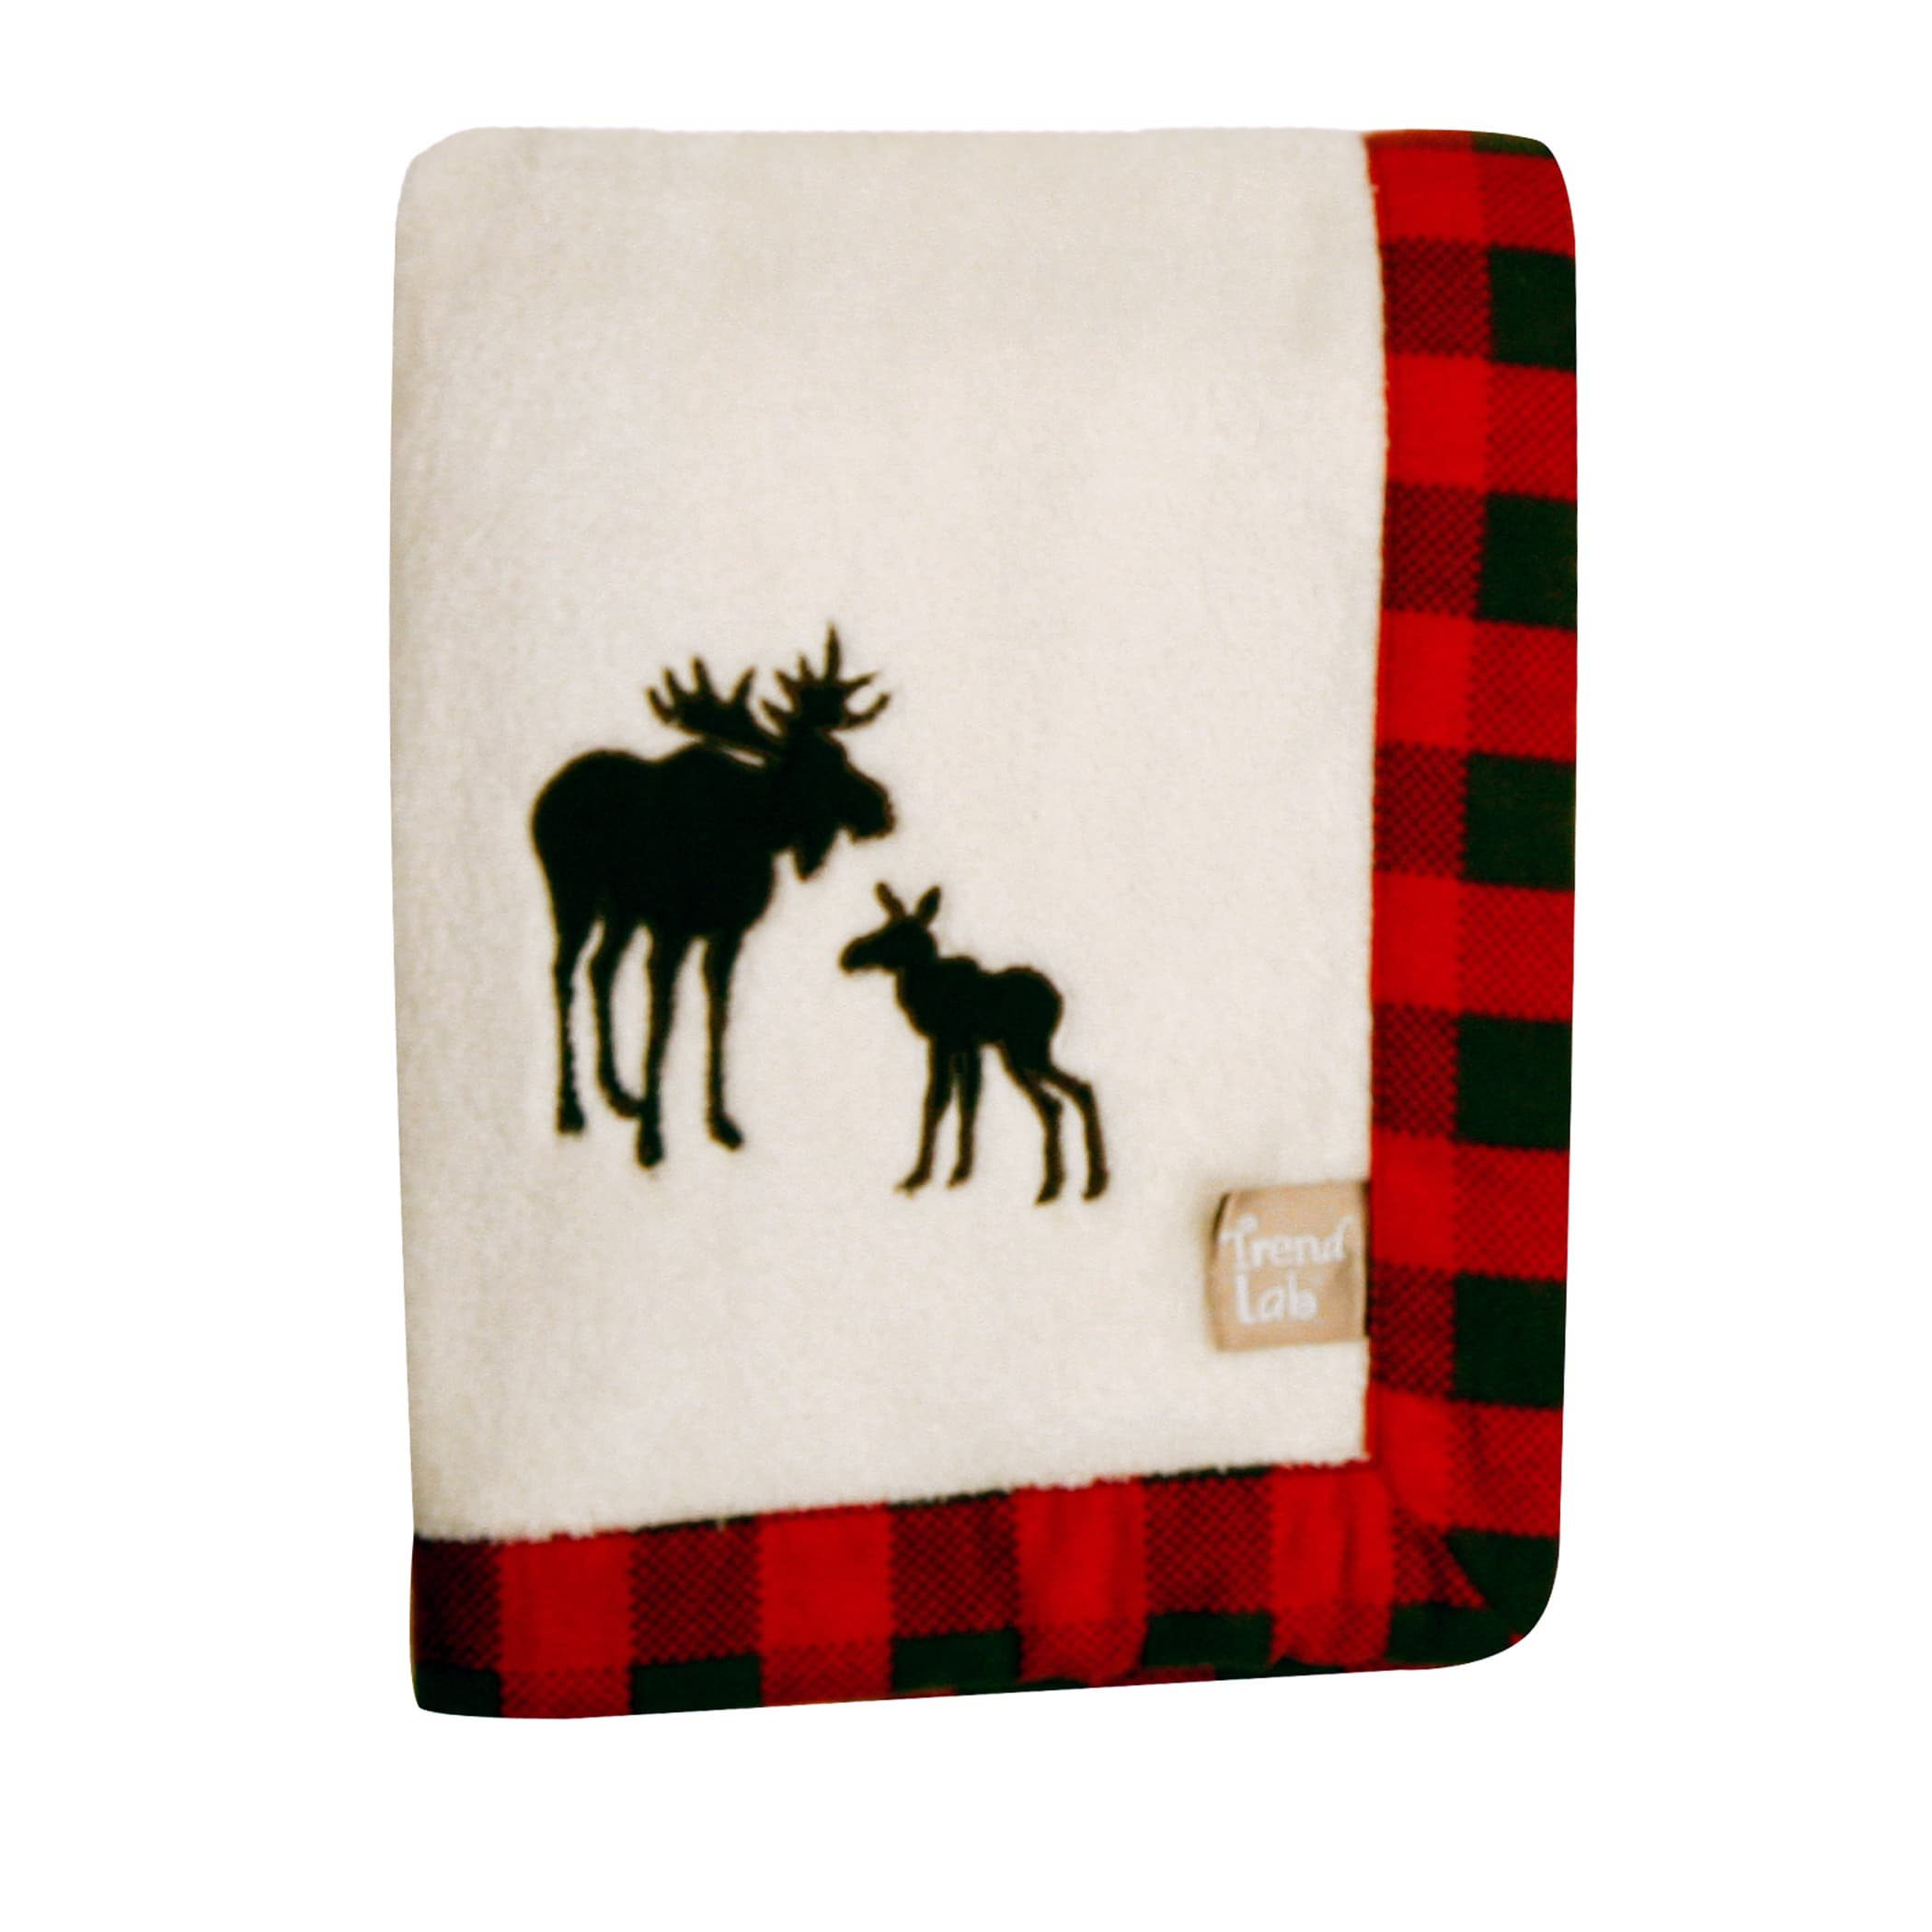 N2 Beautiful White Red Black Moose Framed Deluxe Fleece Blanket, Animal Themed Nursery Bedding, Infant Child Warm Comfortable Woods Solid Color Checkered Pattern Cute Adorable, Cotton